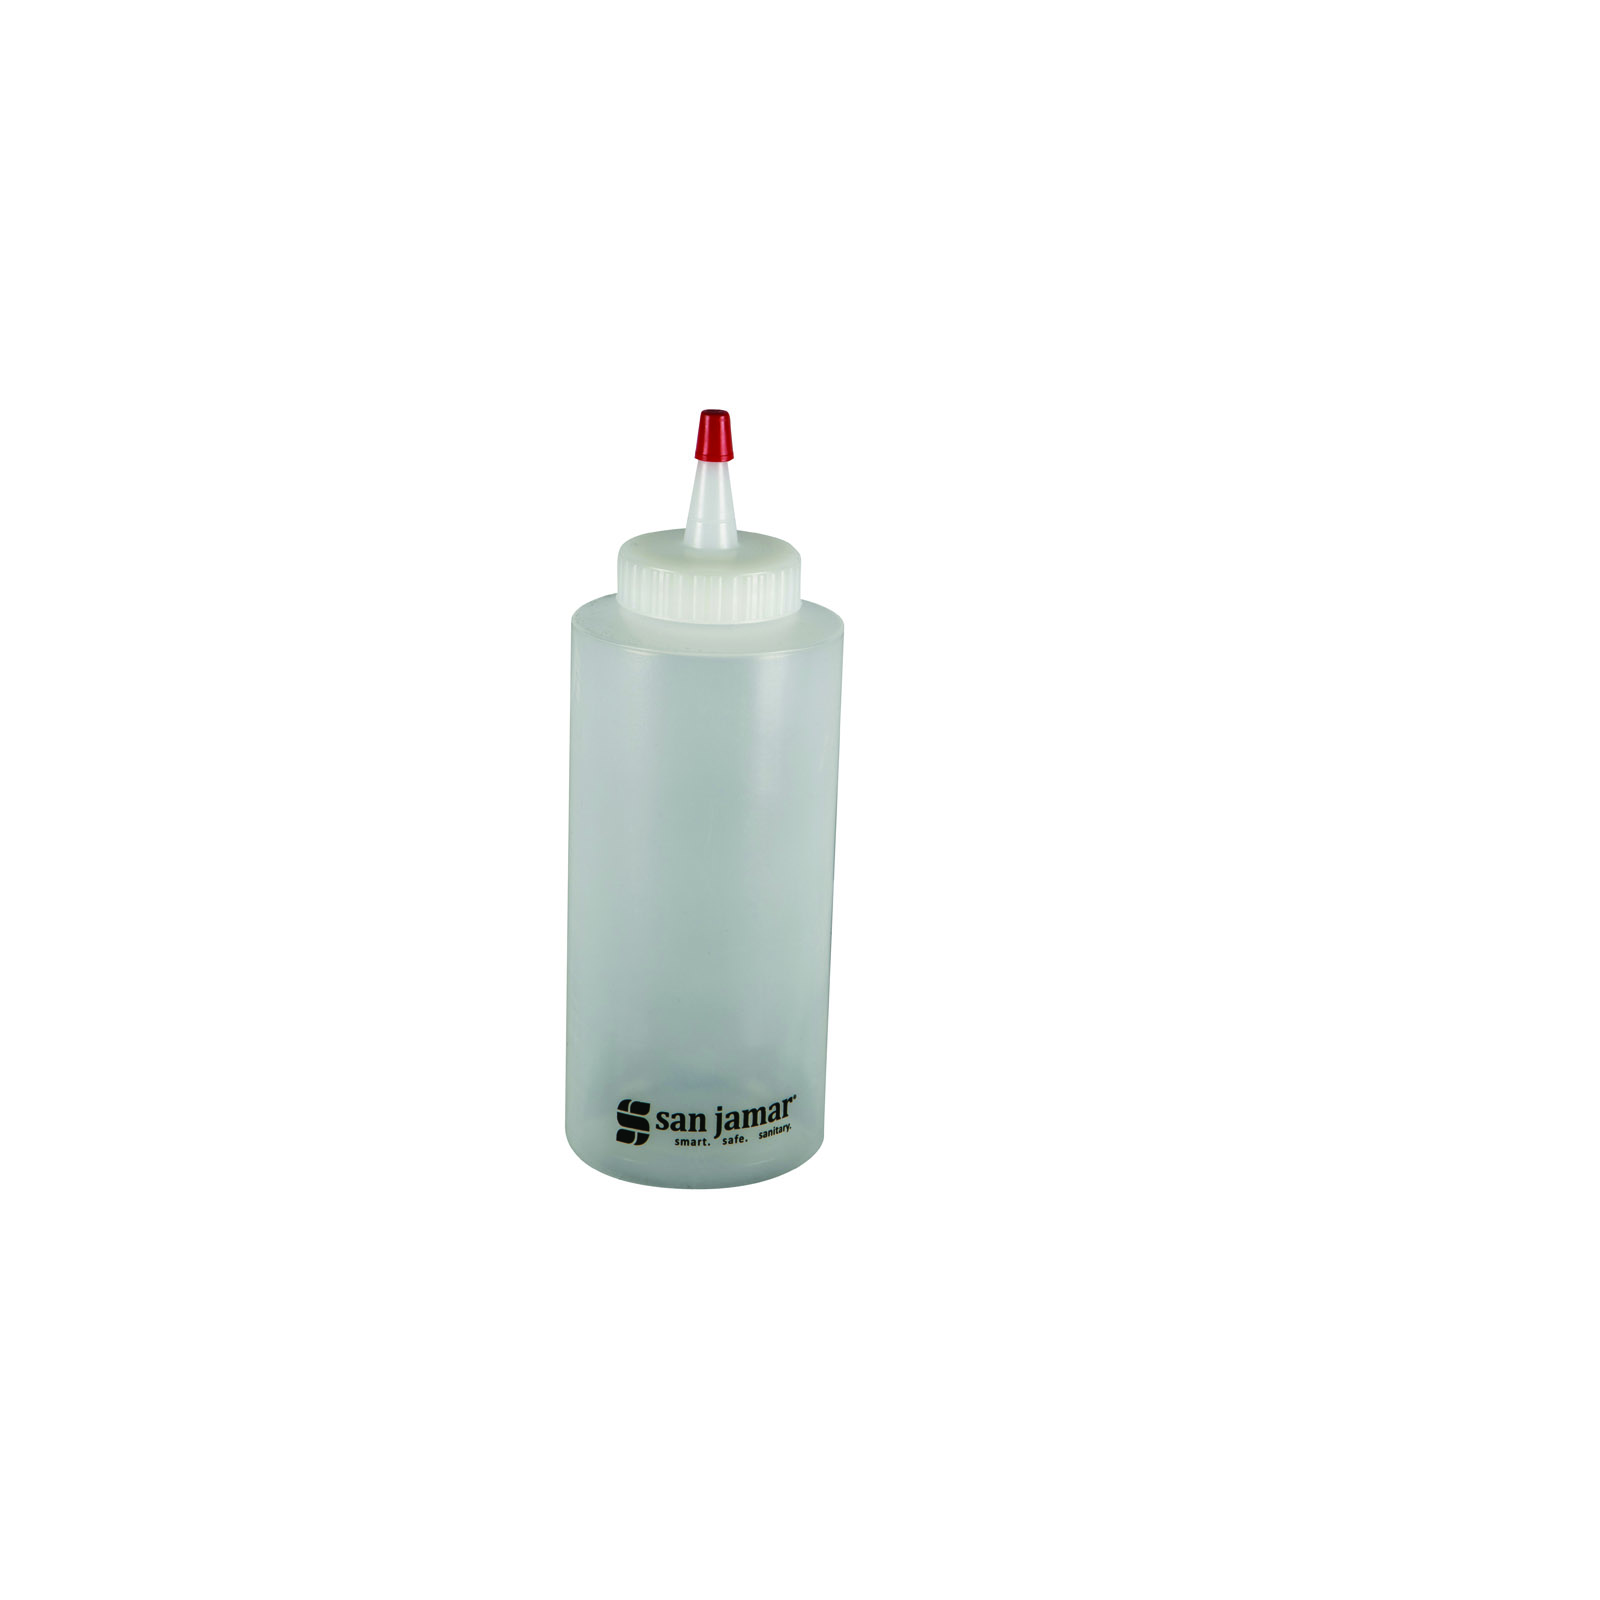 San Jamar P8024 squeeze bottle